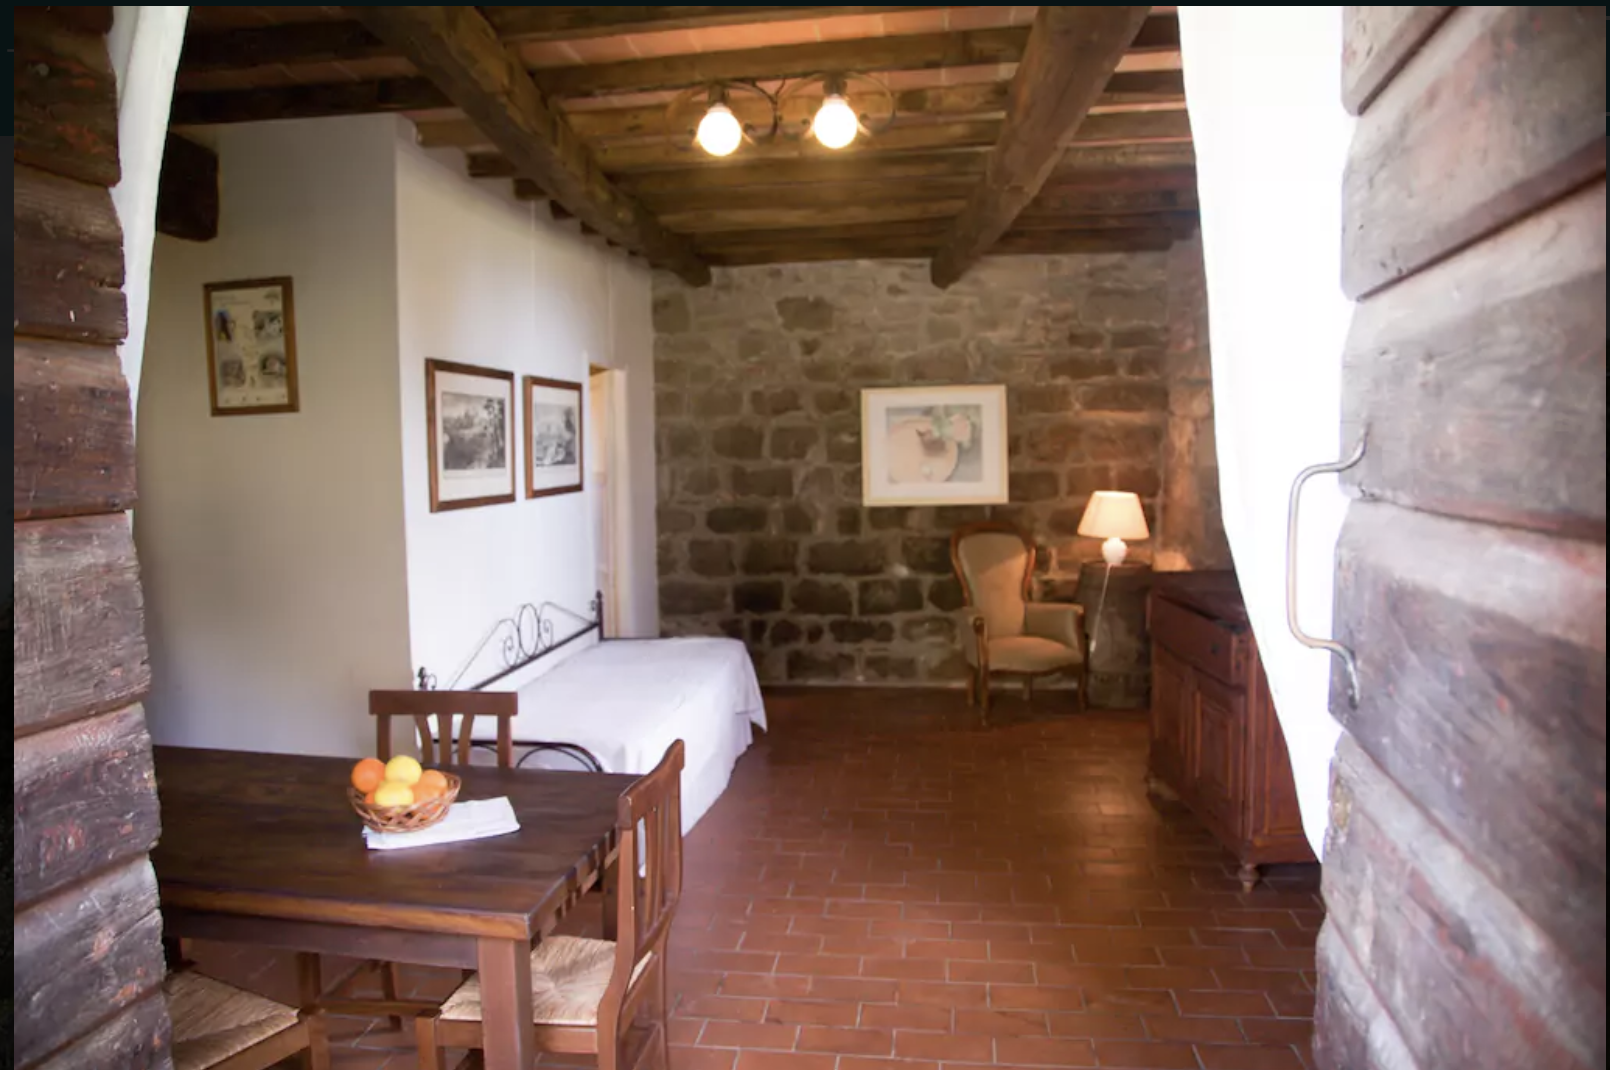 Fattoria 1 (1 bedroom on ground floor sleeps up to 4 guests)